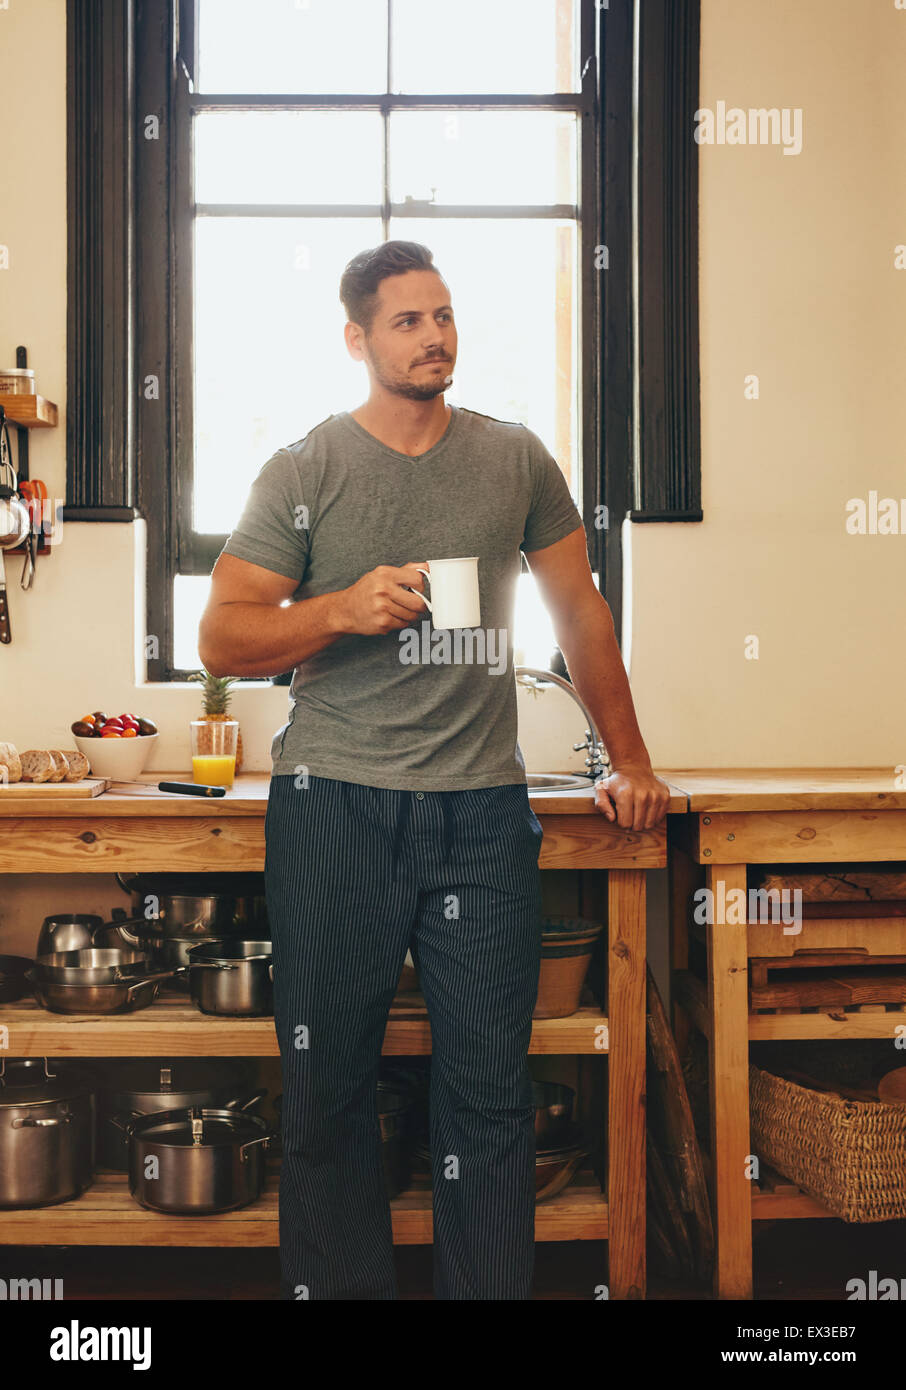 Portrait of man standing in kitchen holding a cup of coffee looking away in thought. Relaxed young man having coffee - Stock Image